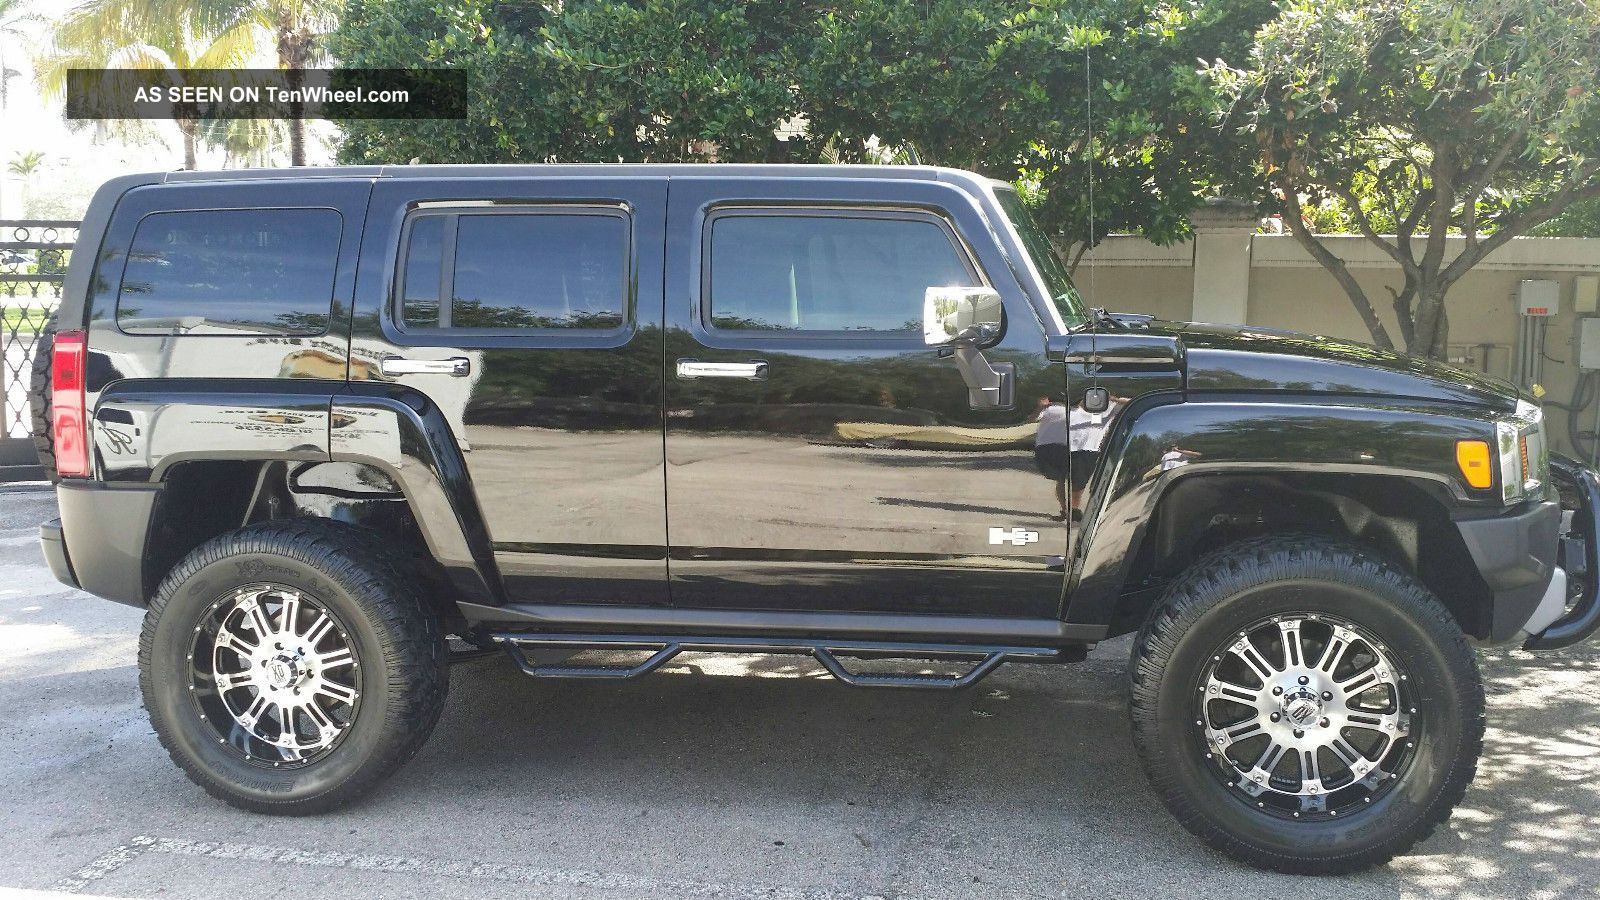 2008 Hummer H3 Alpha - Nicest Looking Aplha In The Country H3 photo